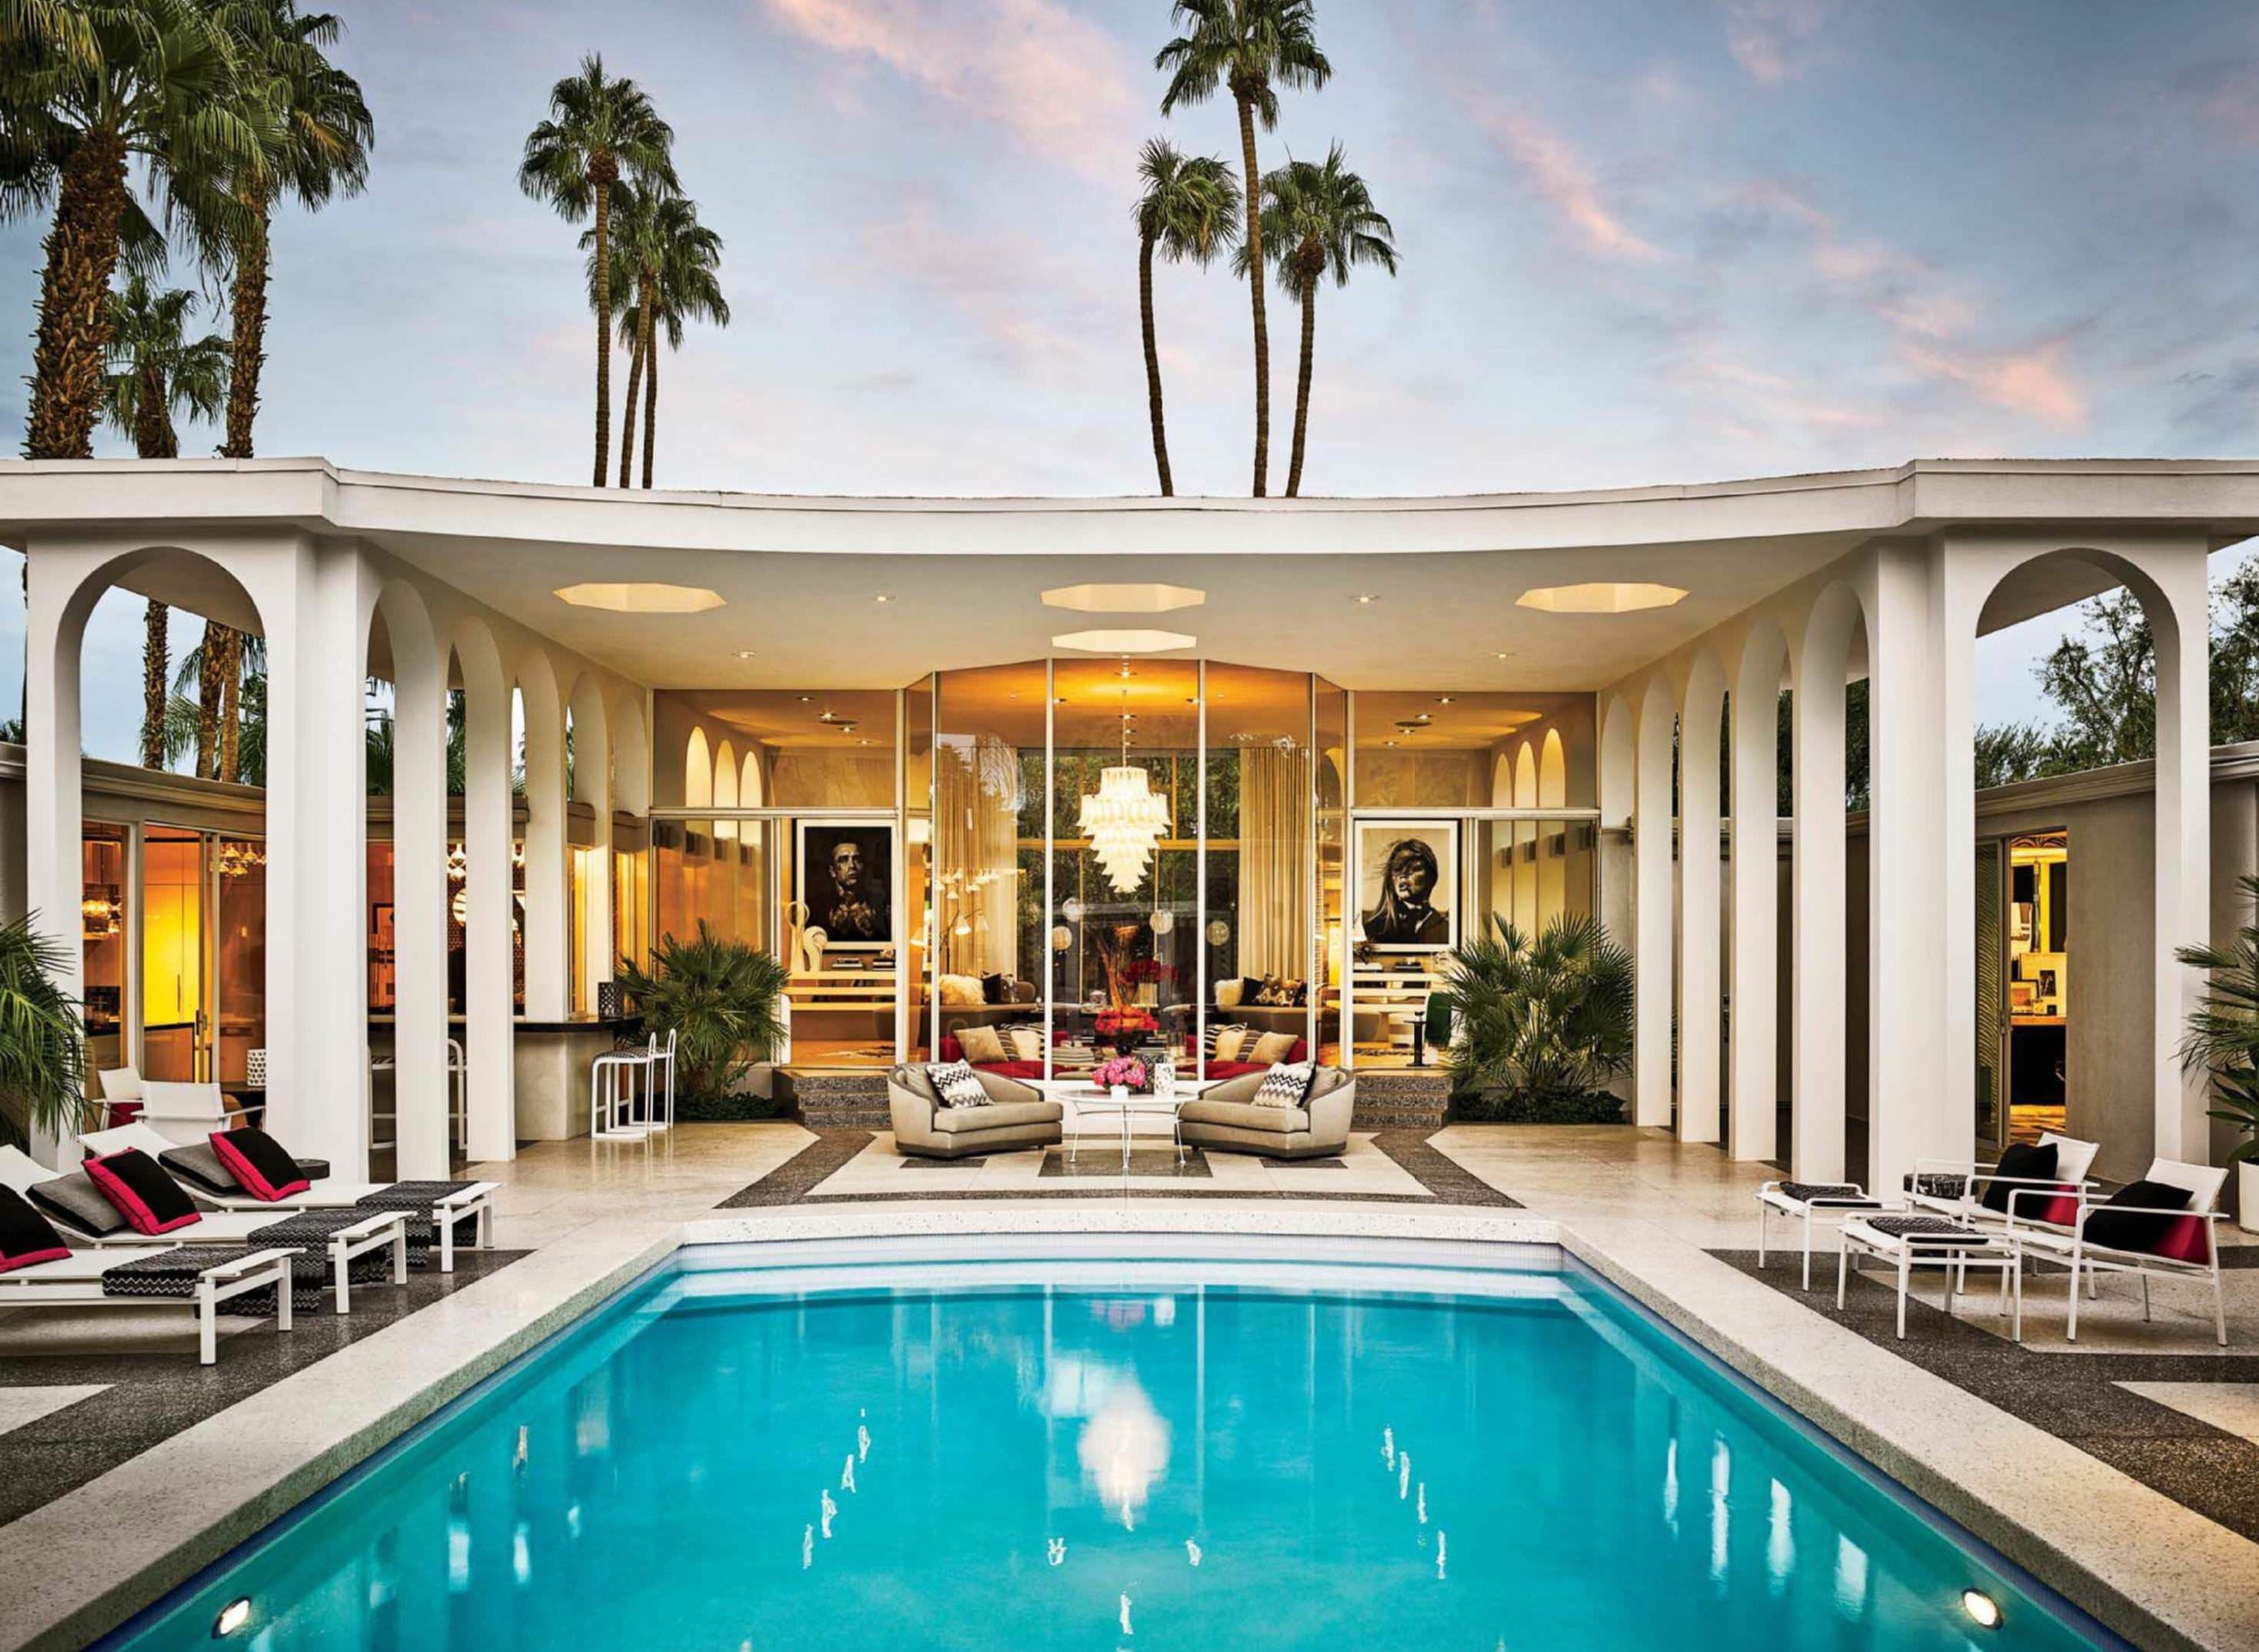 Image Credit: Architectural Digest